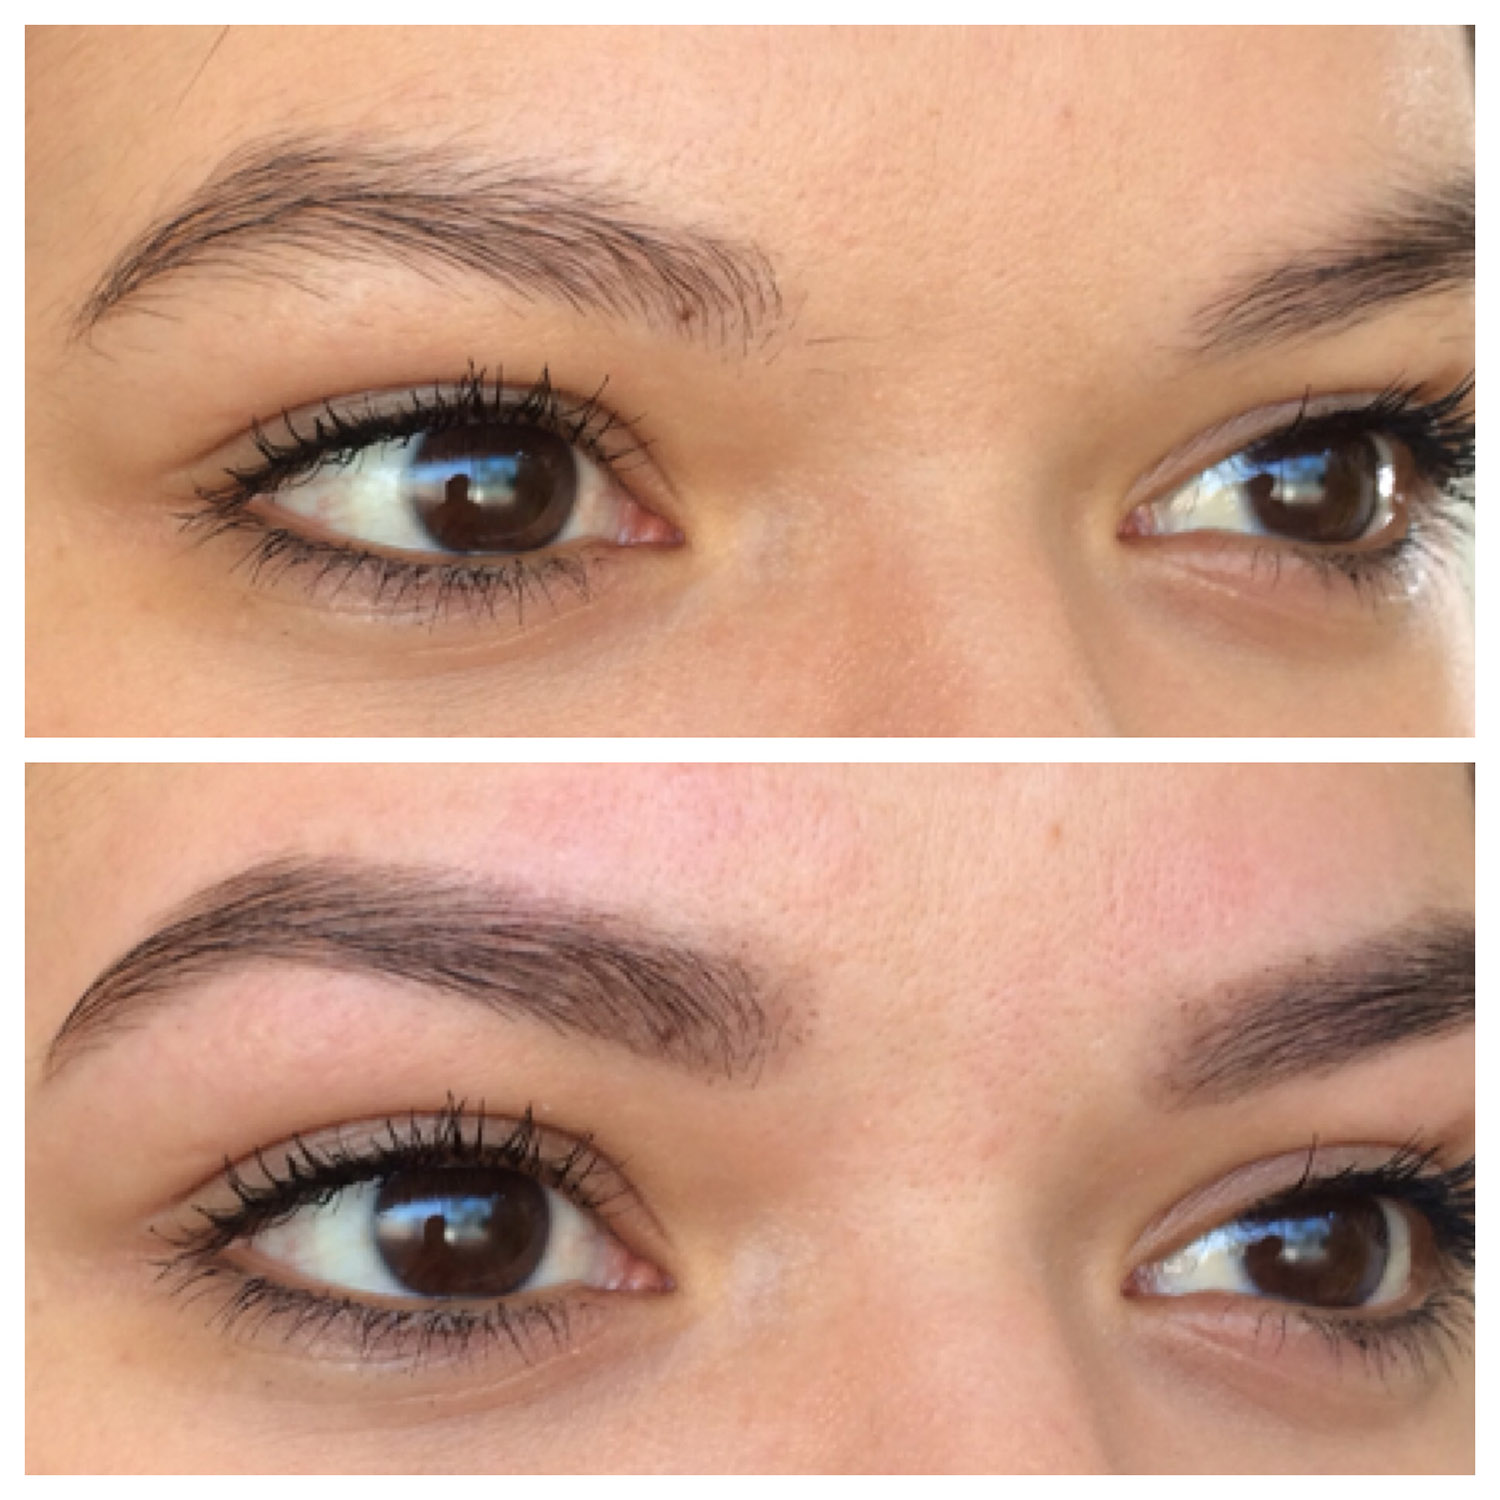 Perth Eyebrow Makeovers Brow Styling Images | Eyebrows by Ainslie